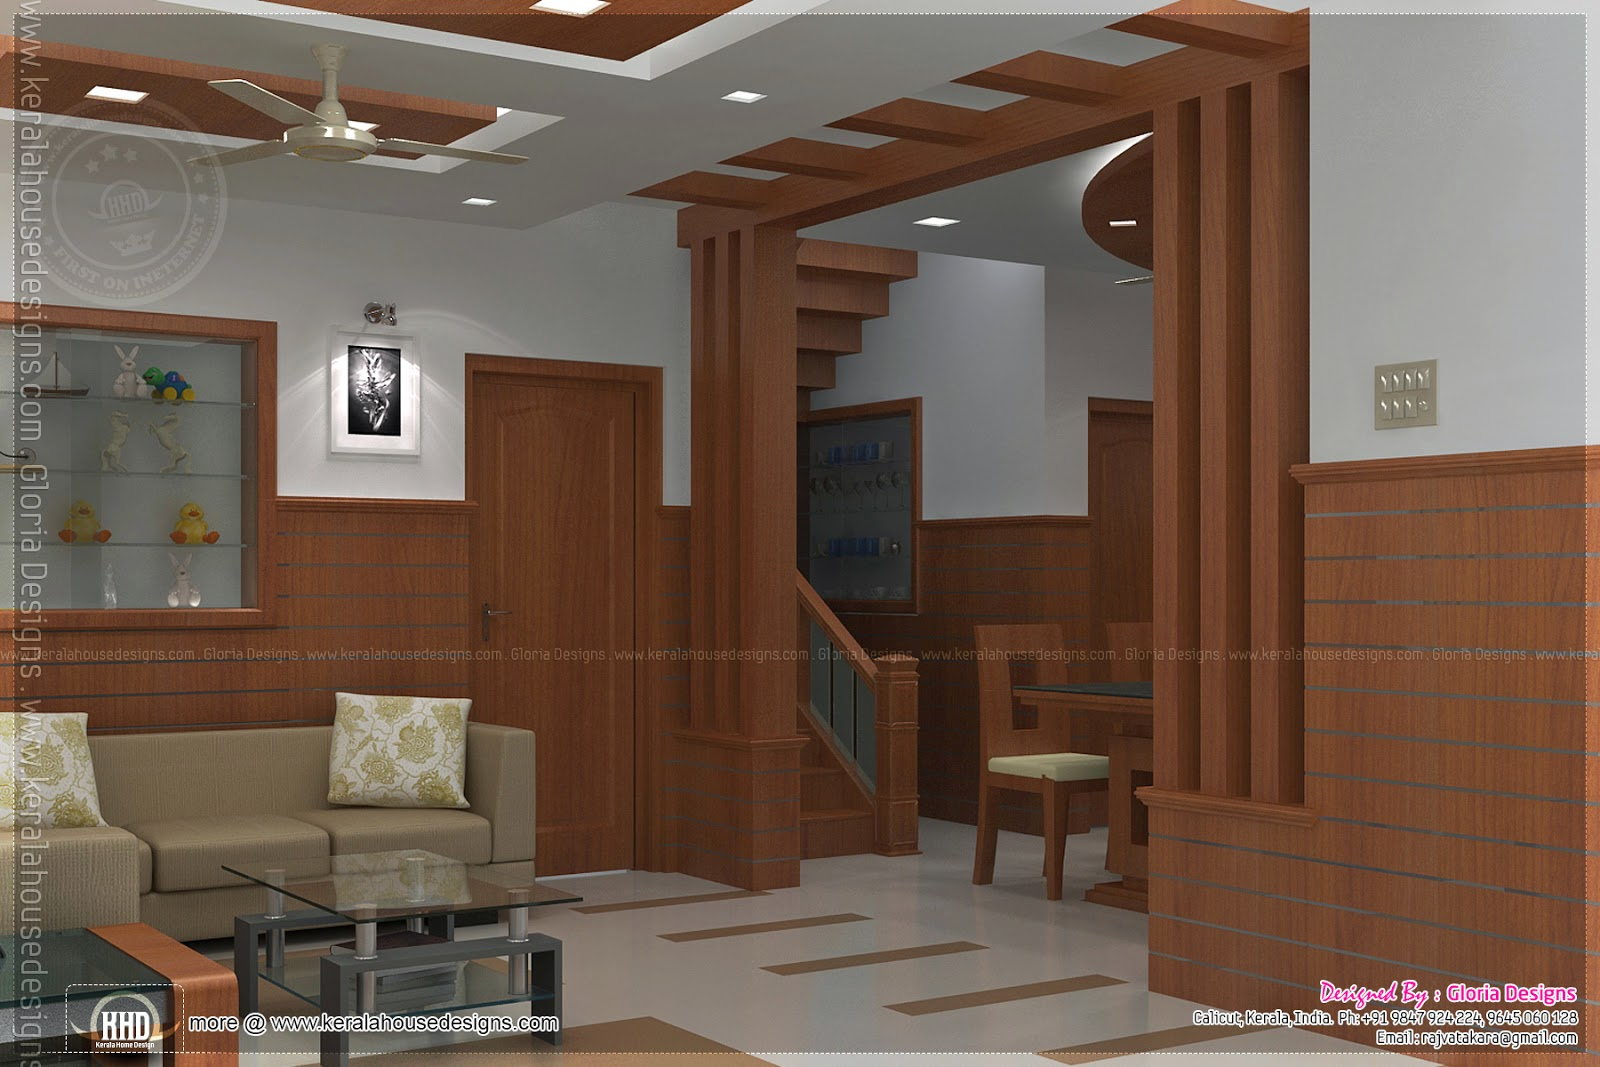 Home interior designs by gloria designs calicut home for Kerala home interior designs photos